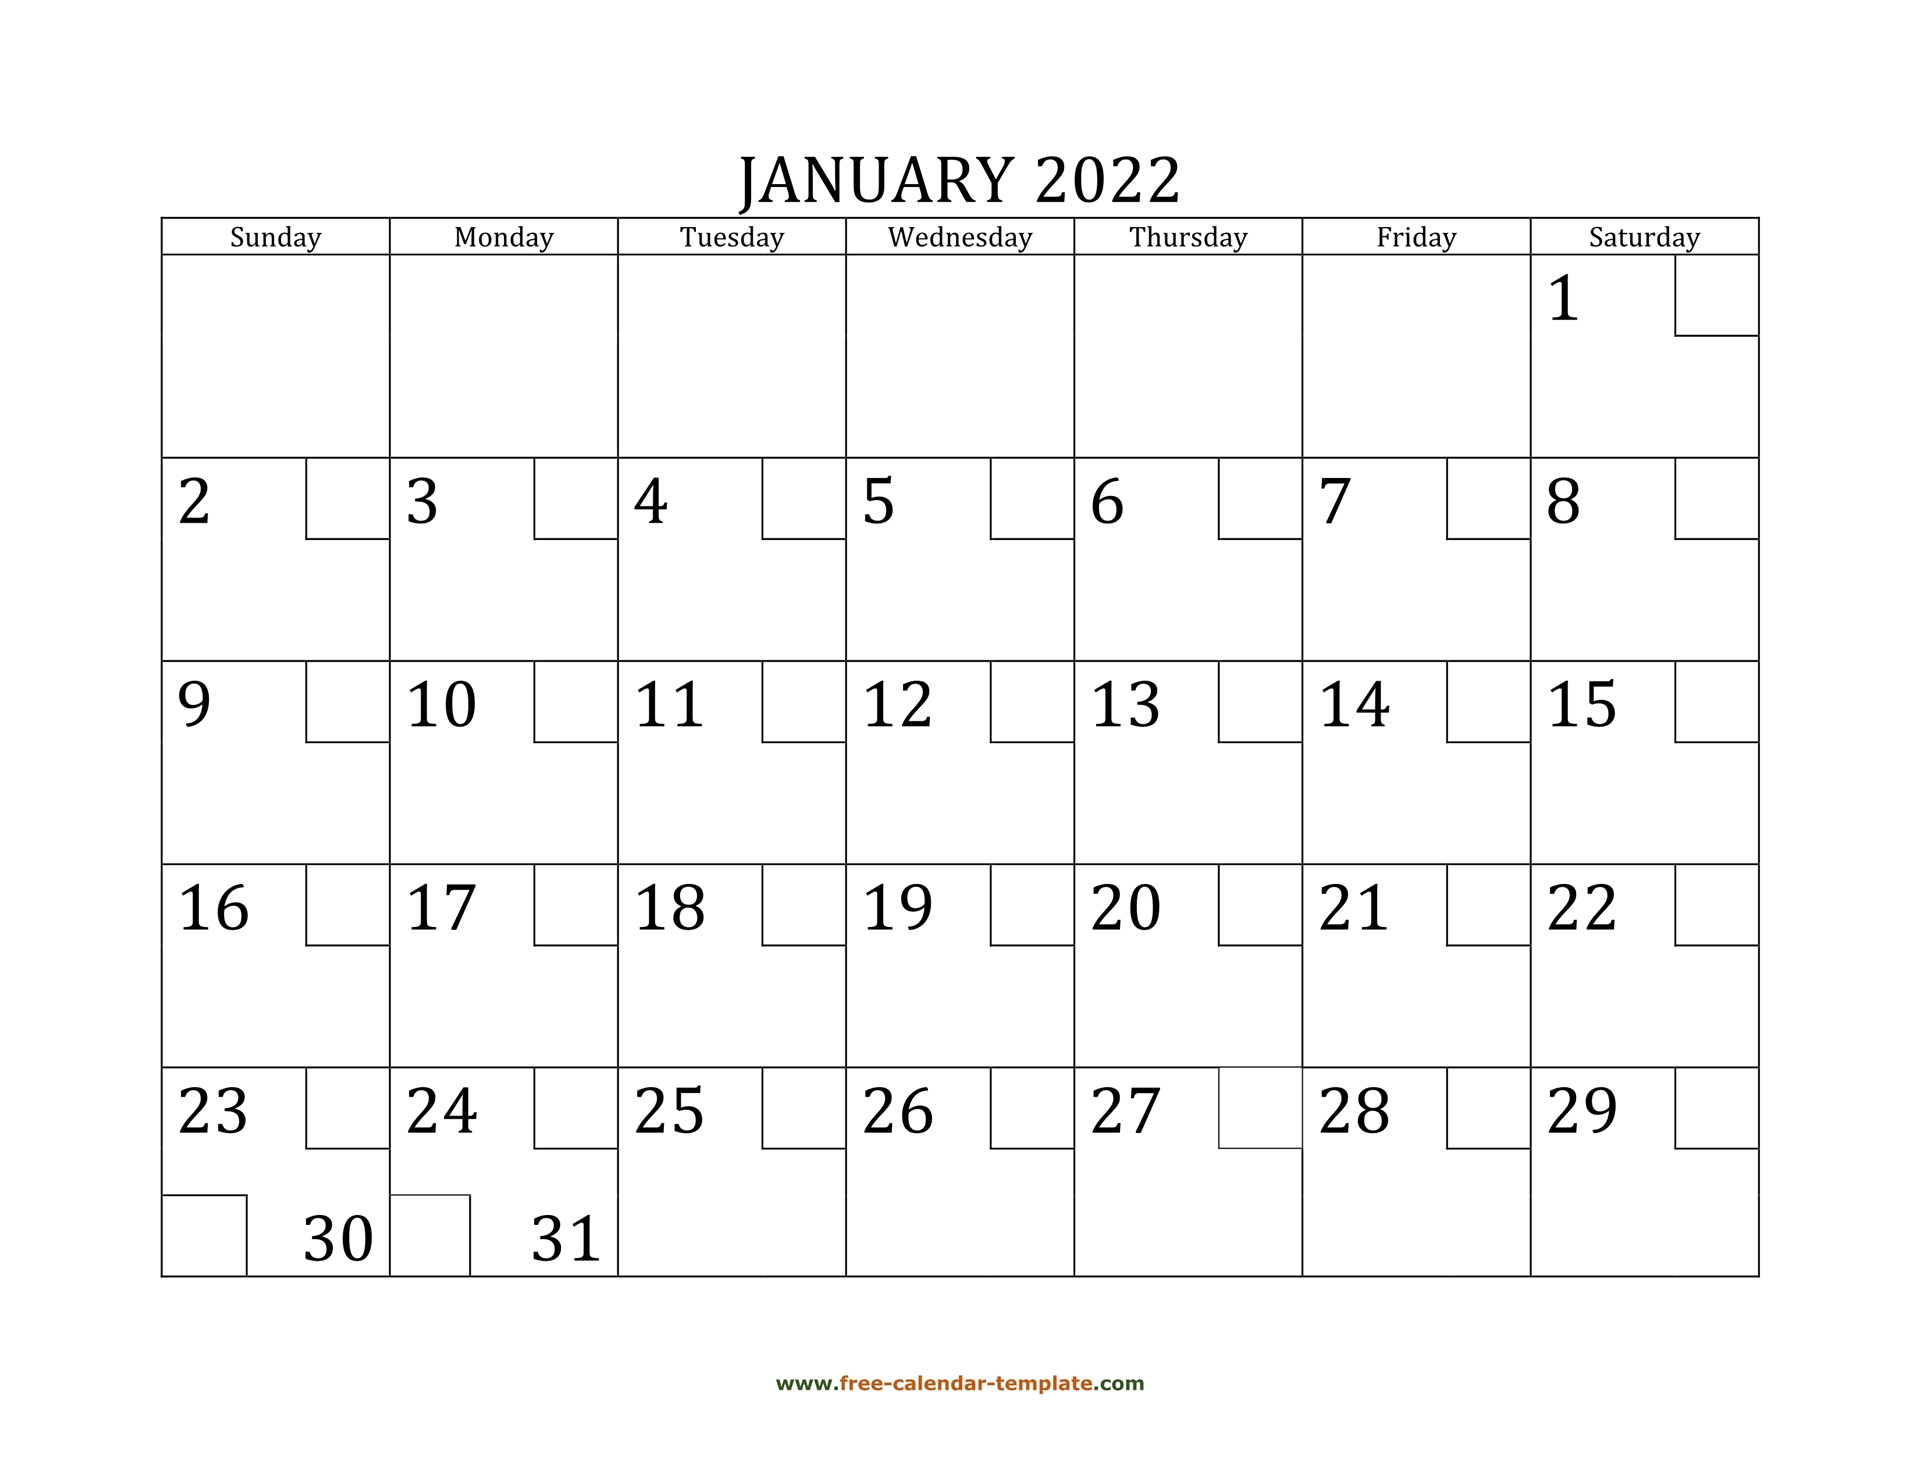 January Calendar 2022 Printable With Checkboxes Throughout January 2022 Free Printable Calendar